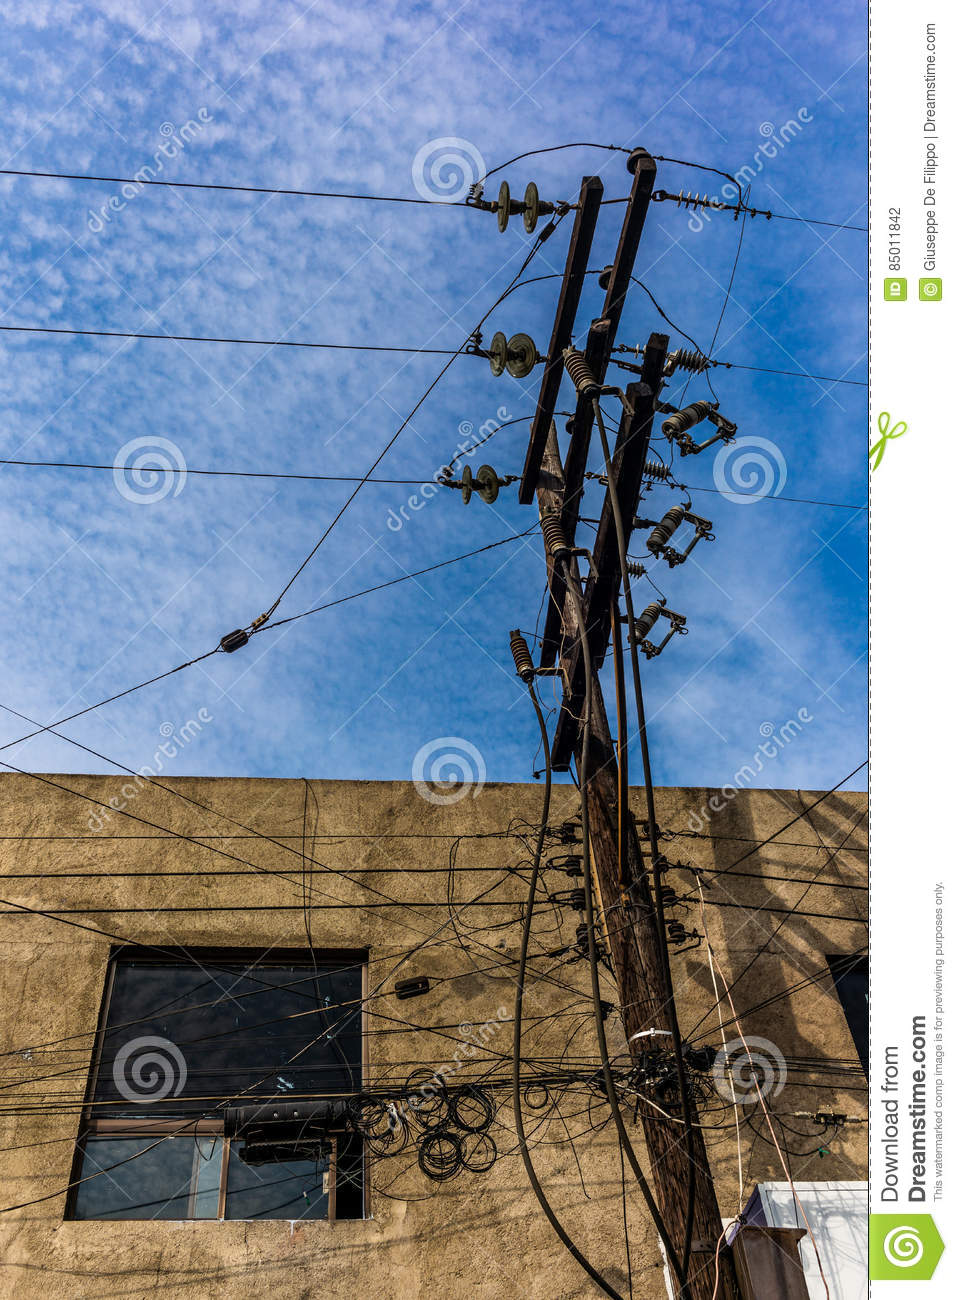 hight resolution of electricity and telephone wires in mexico